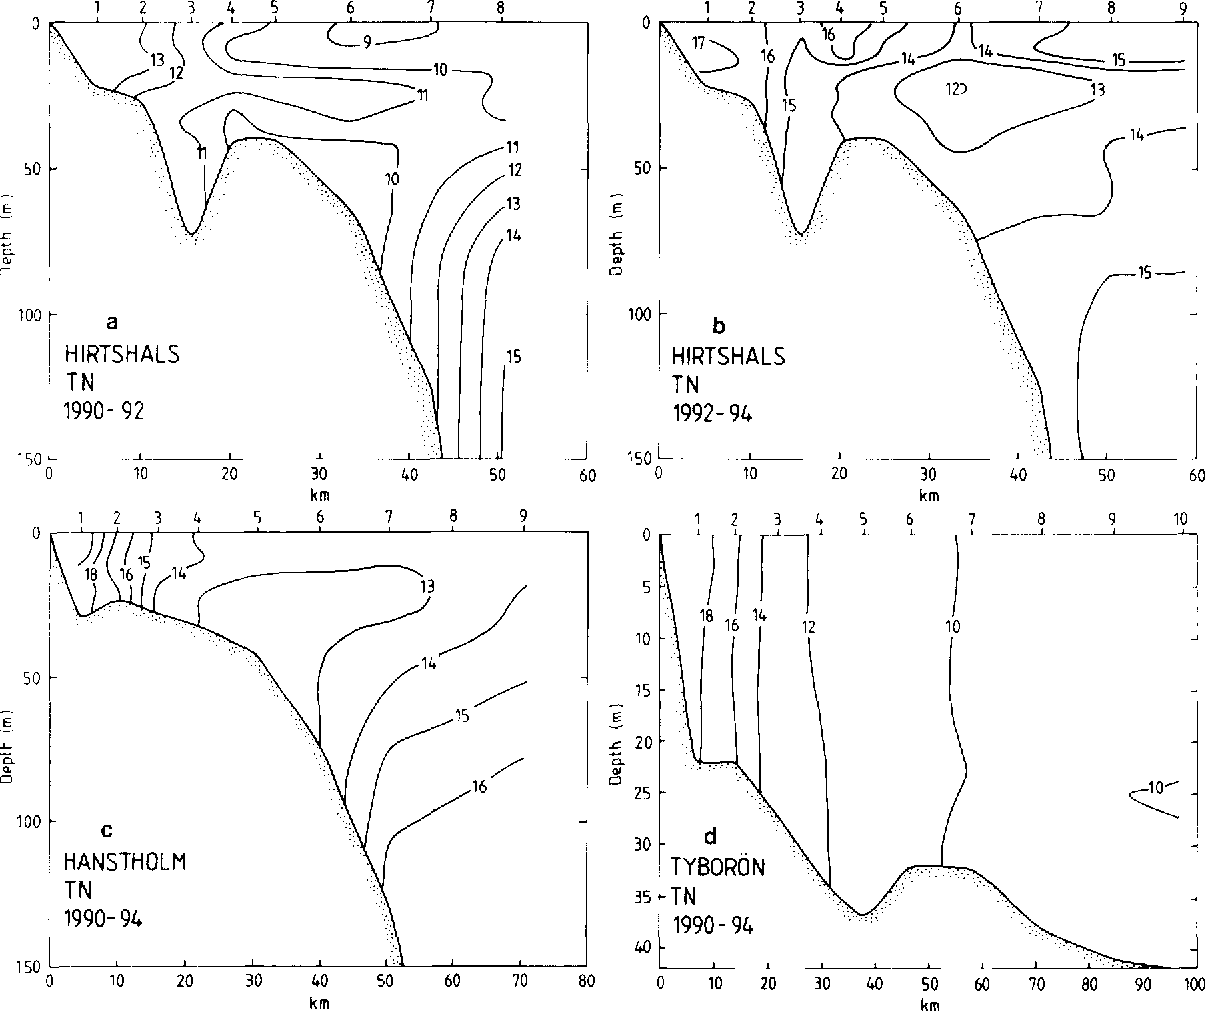 Fig. 5. Average TN concentrations (mmol.m -3) at the cross-sections at Hirtshals (a, b; 20 transects), Hanstholm (c; 24 transects) and Tybor6n (d; 20 transects). Compare legend of Fig. 2.